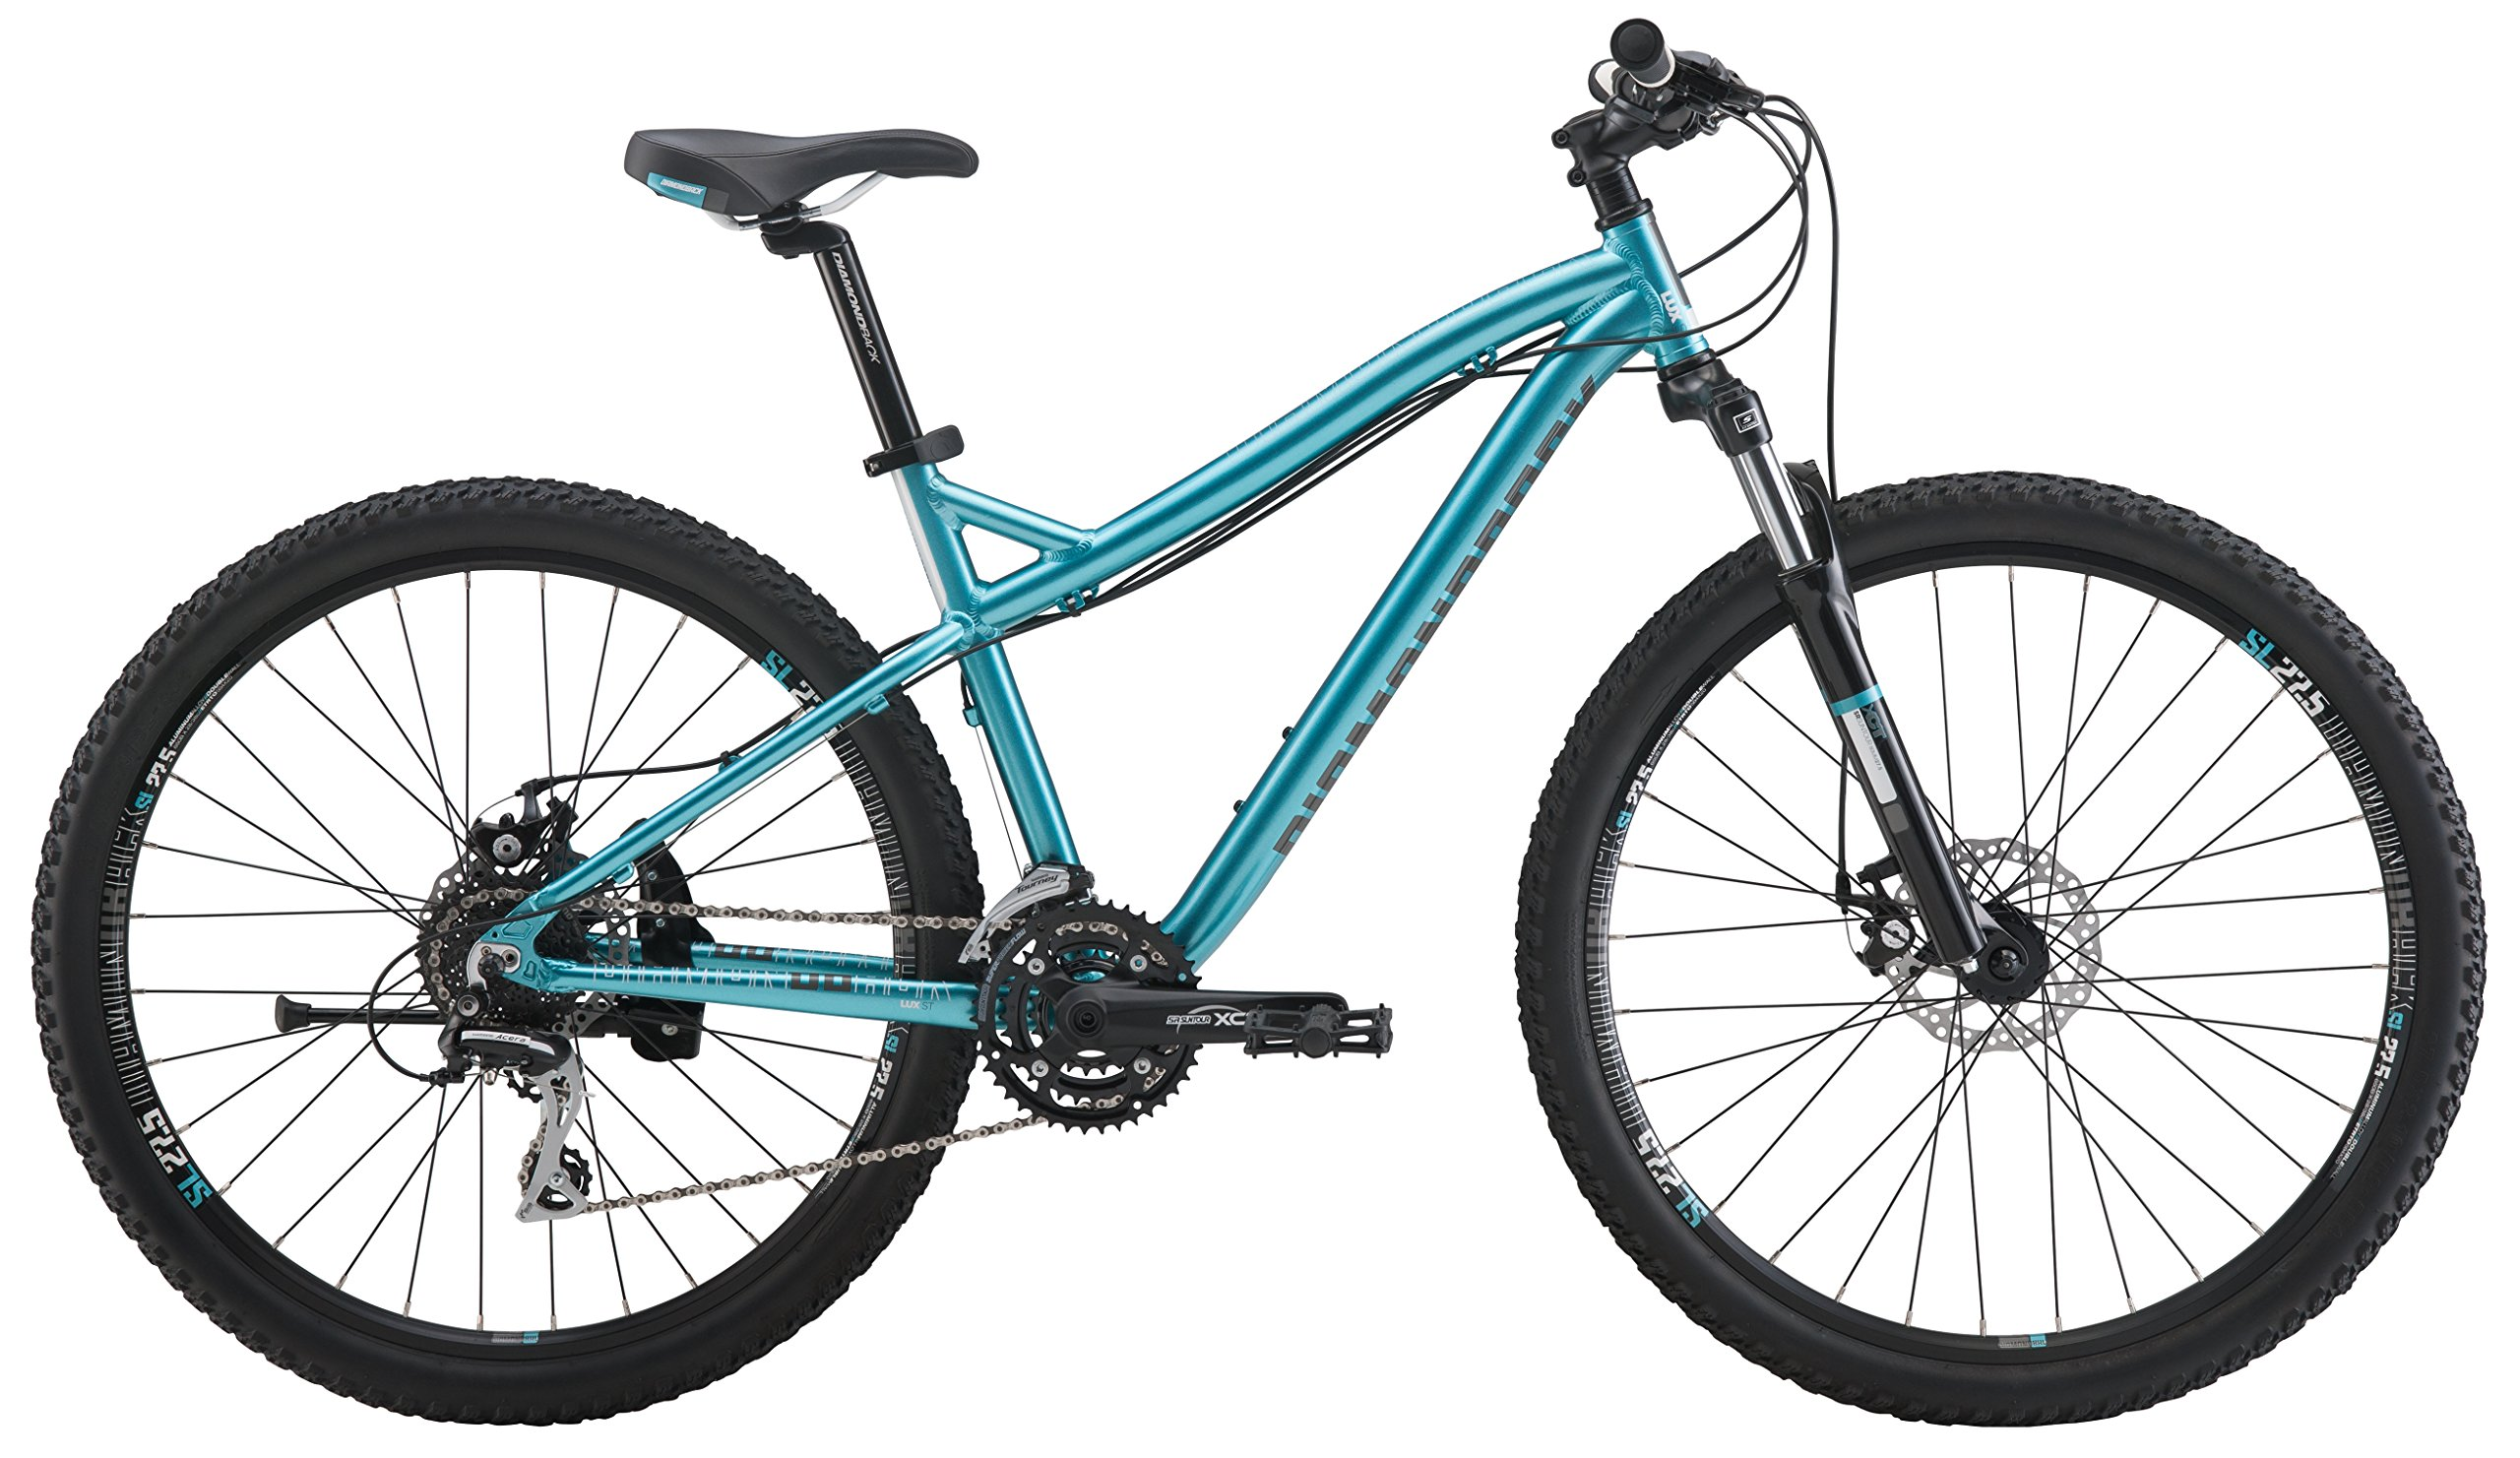 "Diamondback Bicycles Lux 27.5 St Women's Mountain Bike Small/15 Frame, Blue, 15""/ Small"